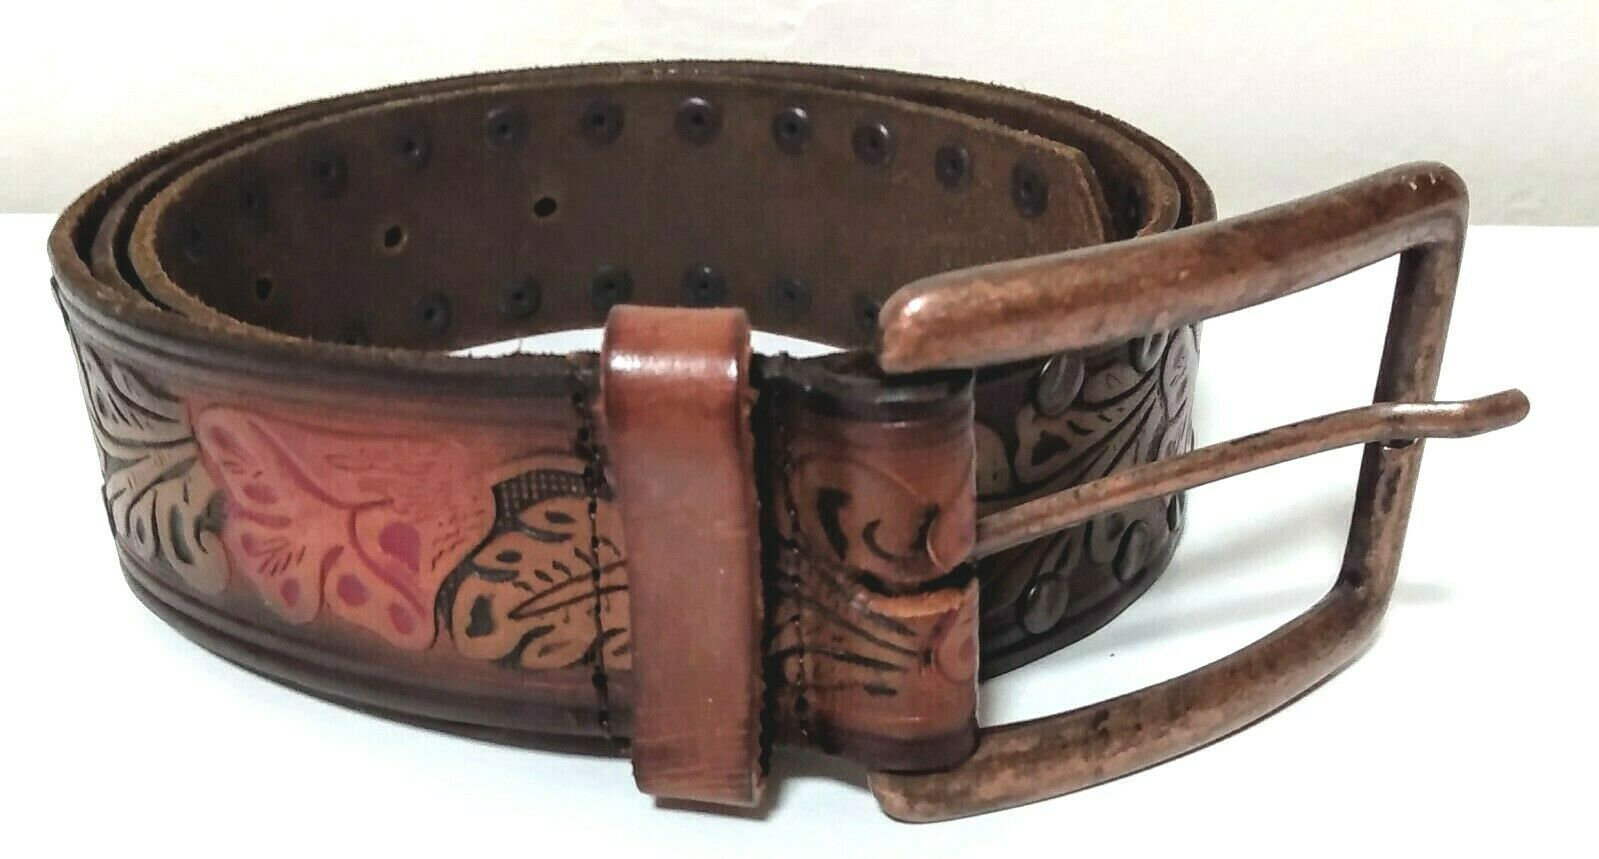 NINE WEST GENUINE LEATHER TOOLED AND RIVETED BELT COWGIRL SIZE LG LADIES WOMEN